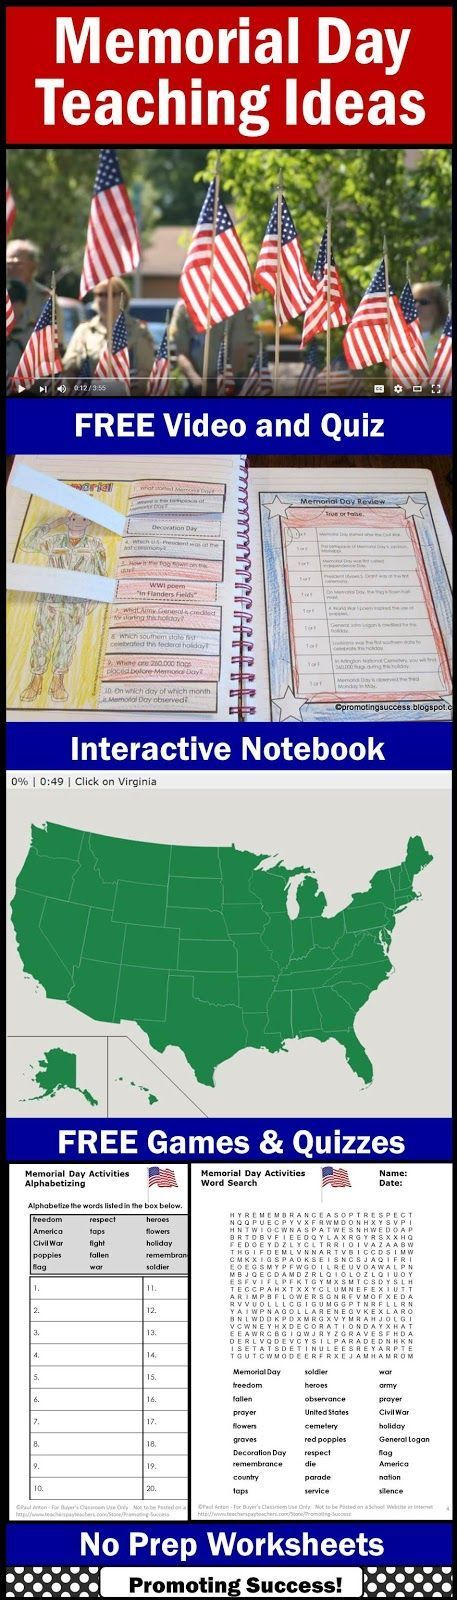 Visit this classroom teacher blog for FREE an informational history facts video and quiz questions for teaching elementary students about Memorial Day. You will also find printable worksheets, fun games, and an interactive notebook craft activity (craftivity) for elementary kids.